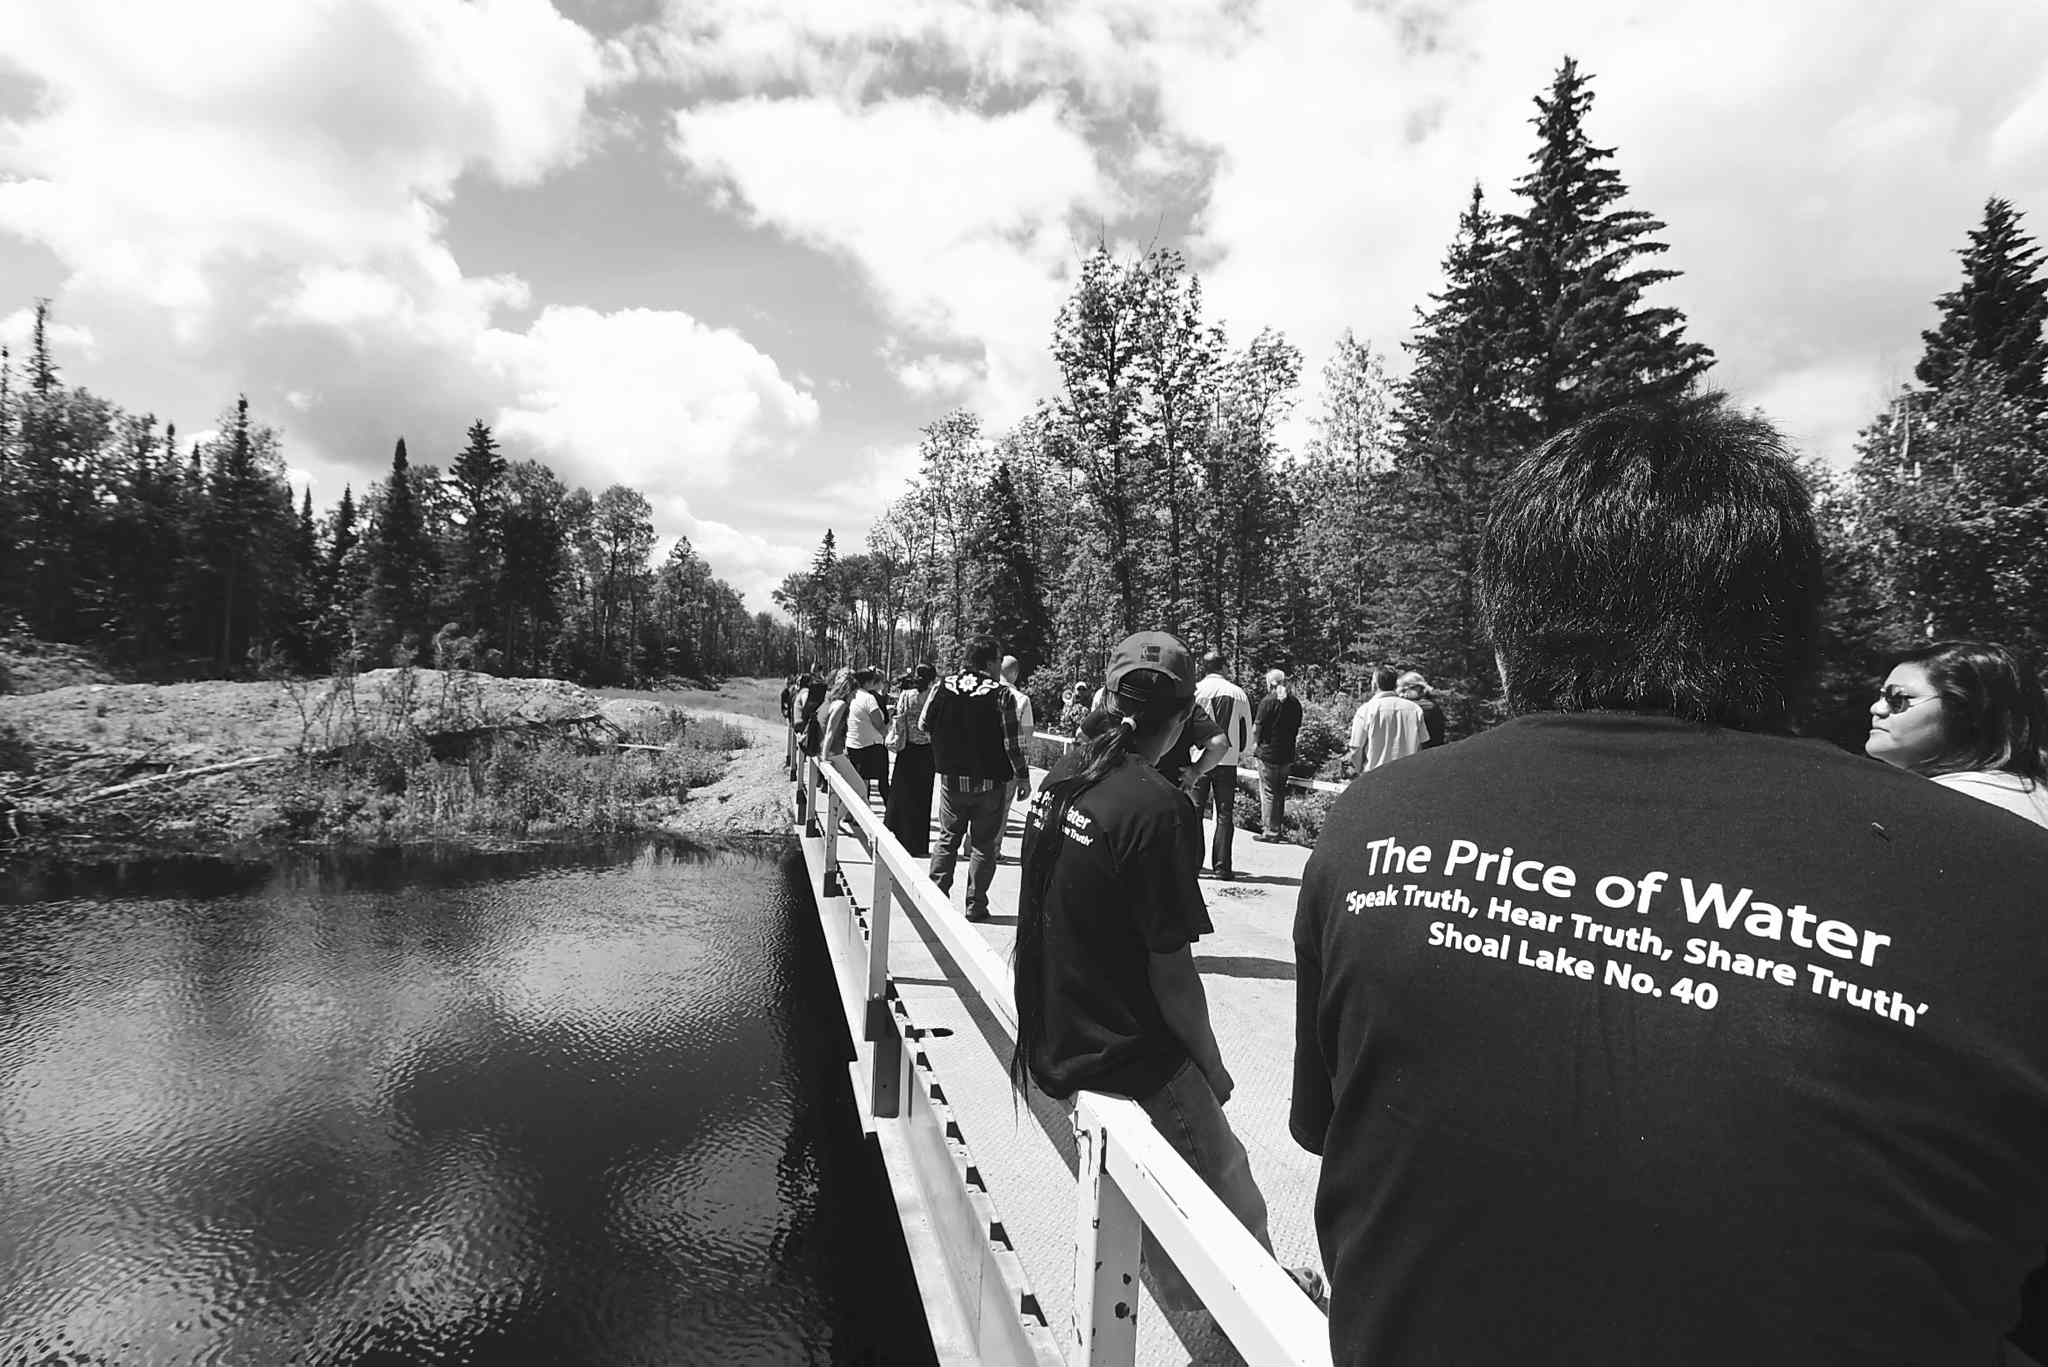 Shoal Lake 40 First Nation residents marked the 100th anniversary of the  flooding of their land, required for Winnipeg's water supply, in July of this year.